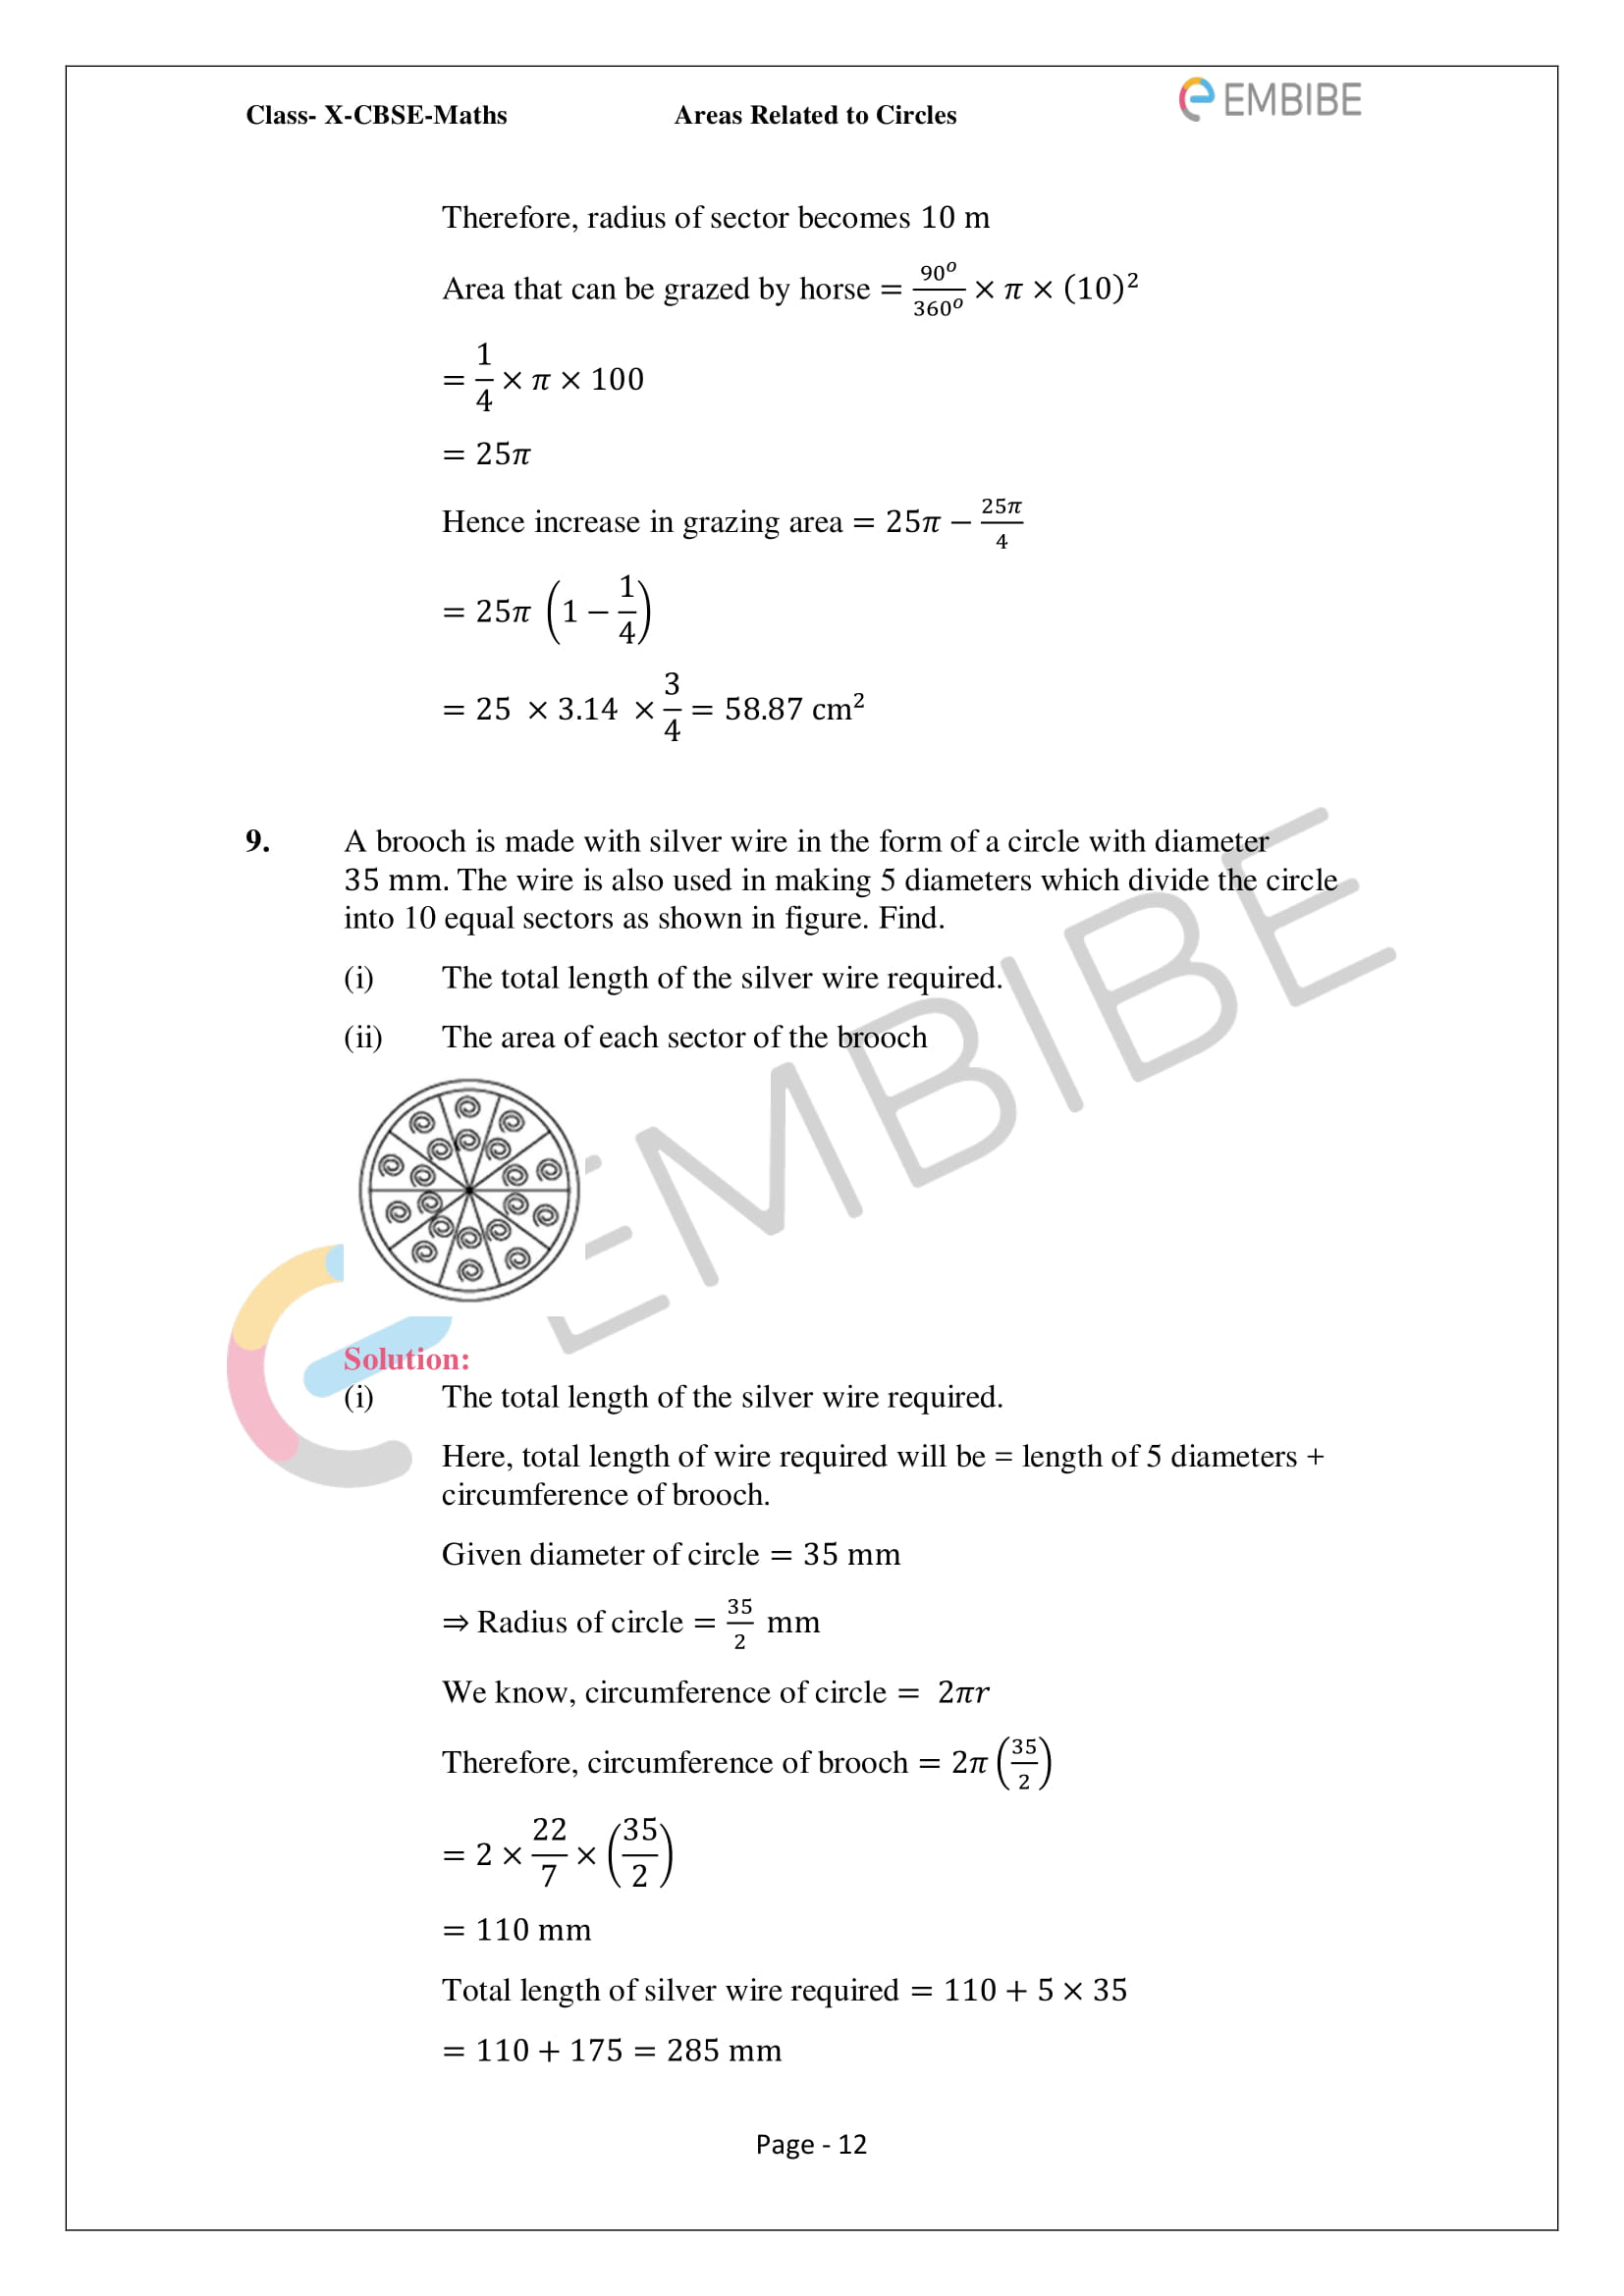 CBSE NCERT Solutions For Class 10 Maths Chapter 12 - Areas Related To Circle - 12